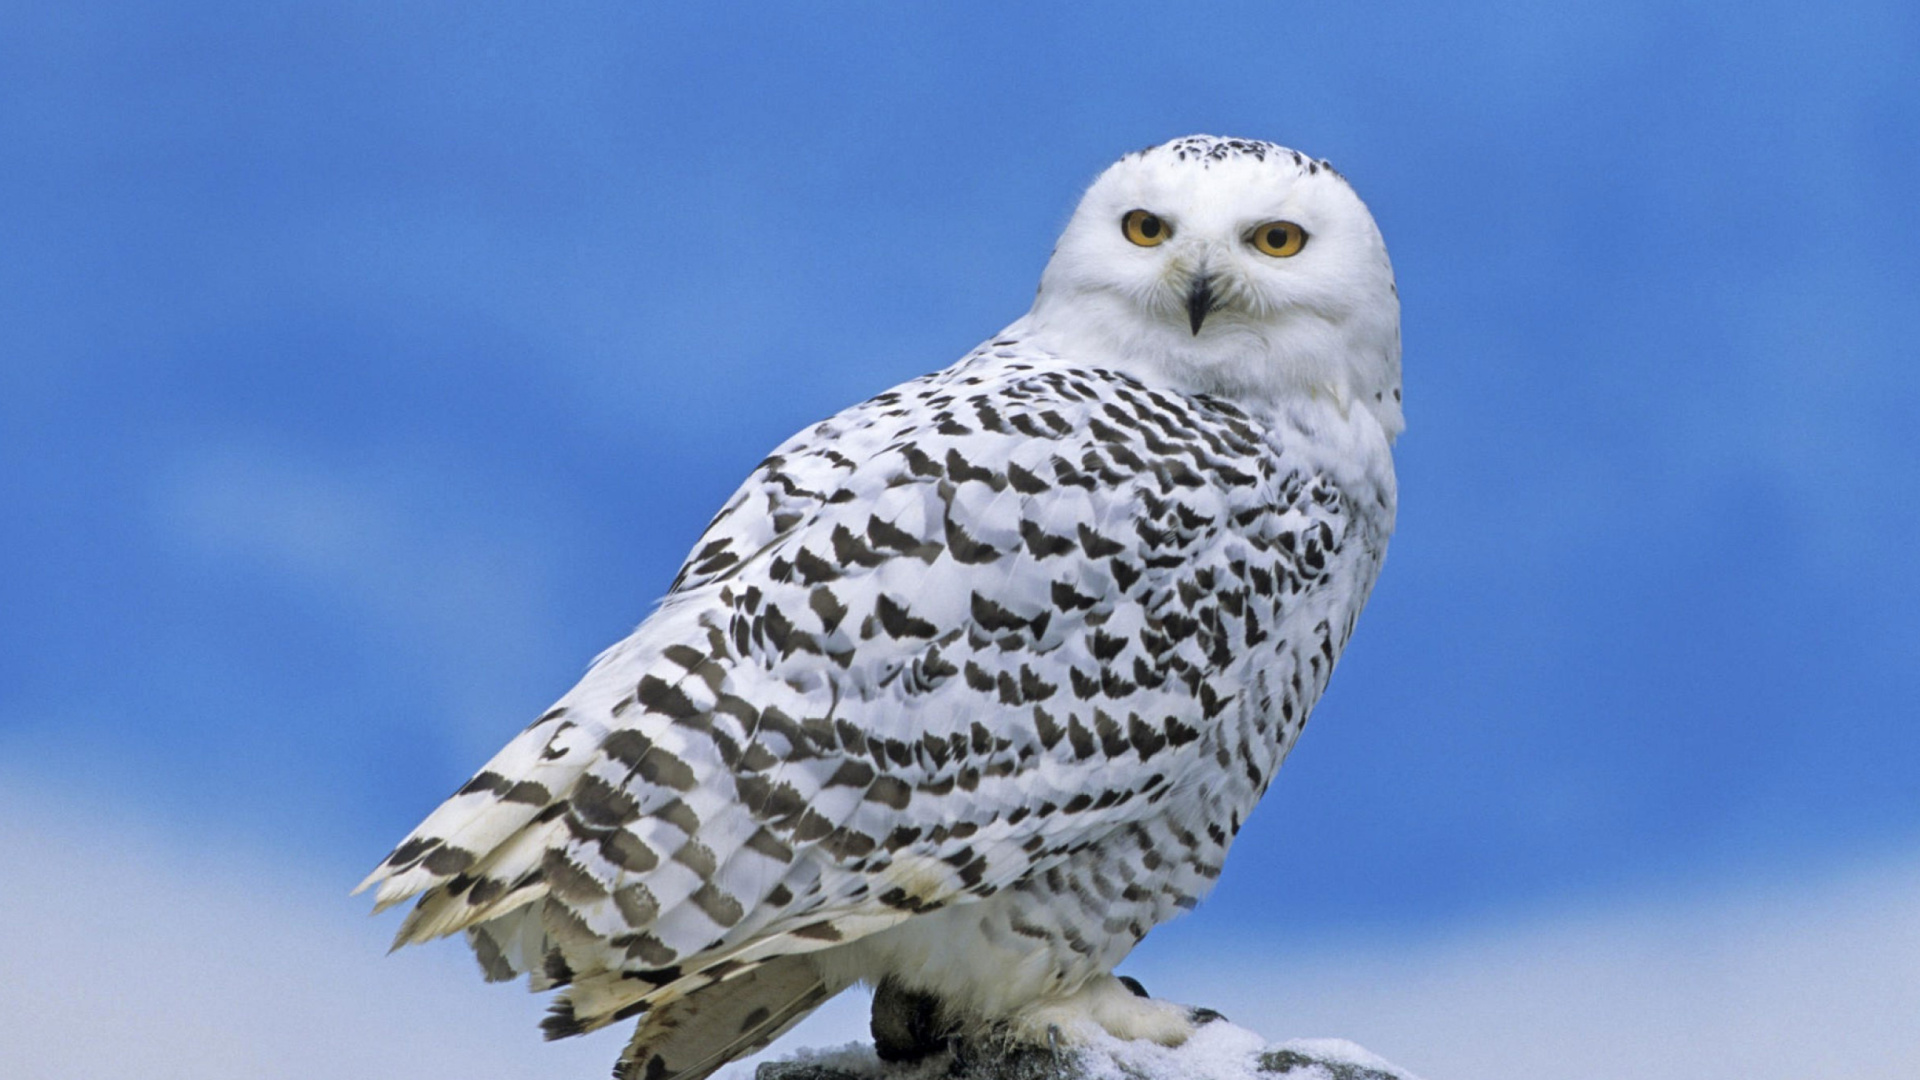 Snowy owl from Arctic Wallpaper for Desktop 1920x1080 Full HD